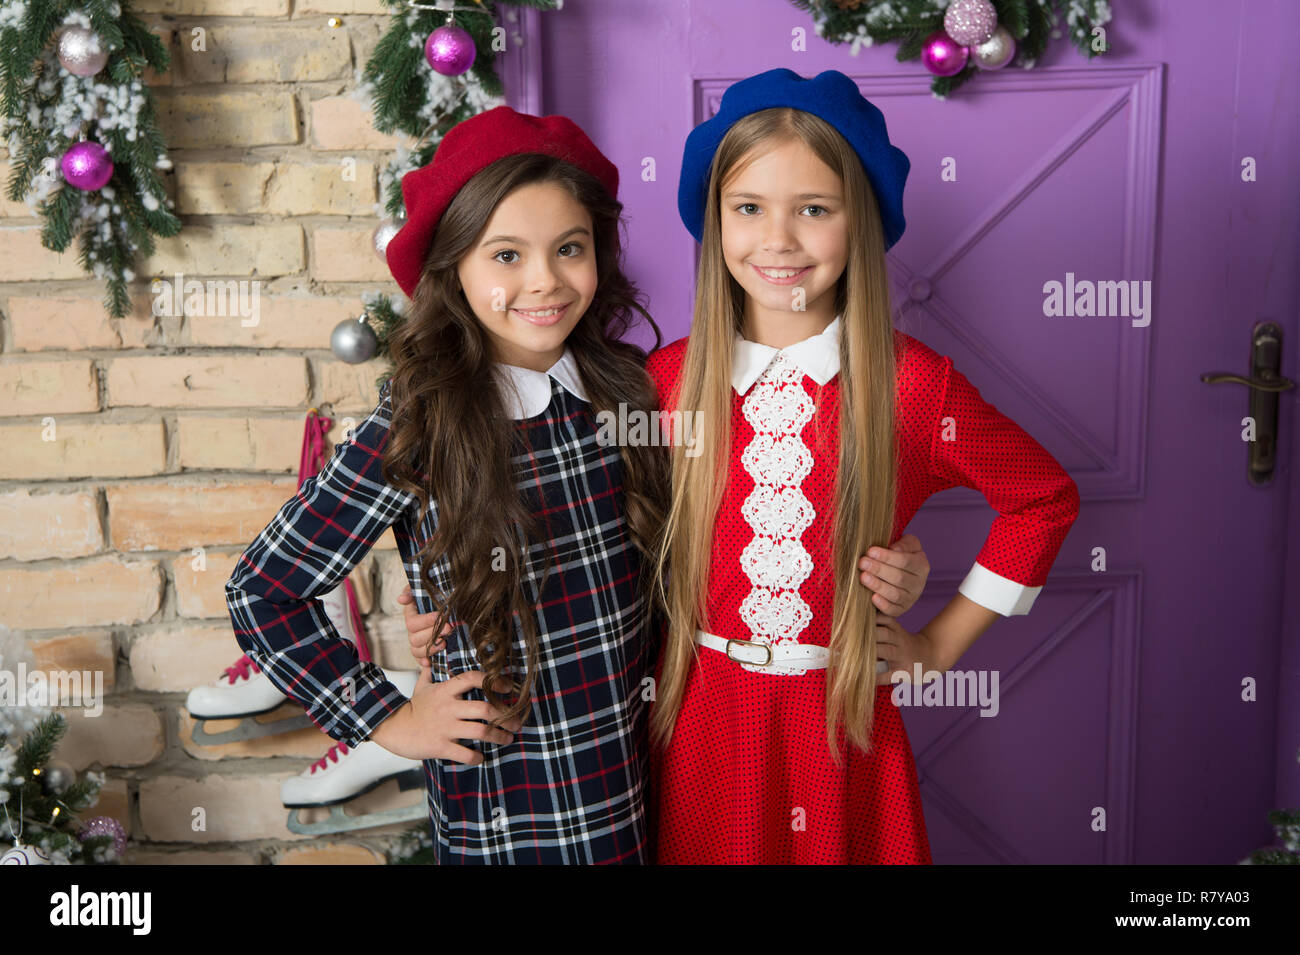 Dressing Like A French Girl Small Girls With Long Hair Style For New Year Party Small Children On New Year Eve Fashion Girls With Beauty Look Little Children In Stylish Berets French